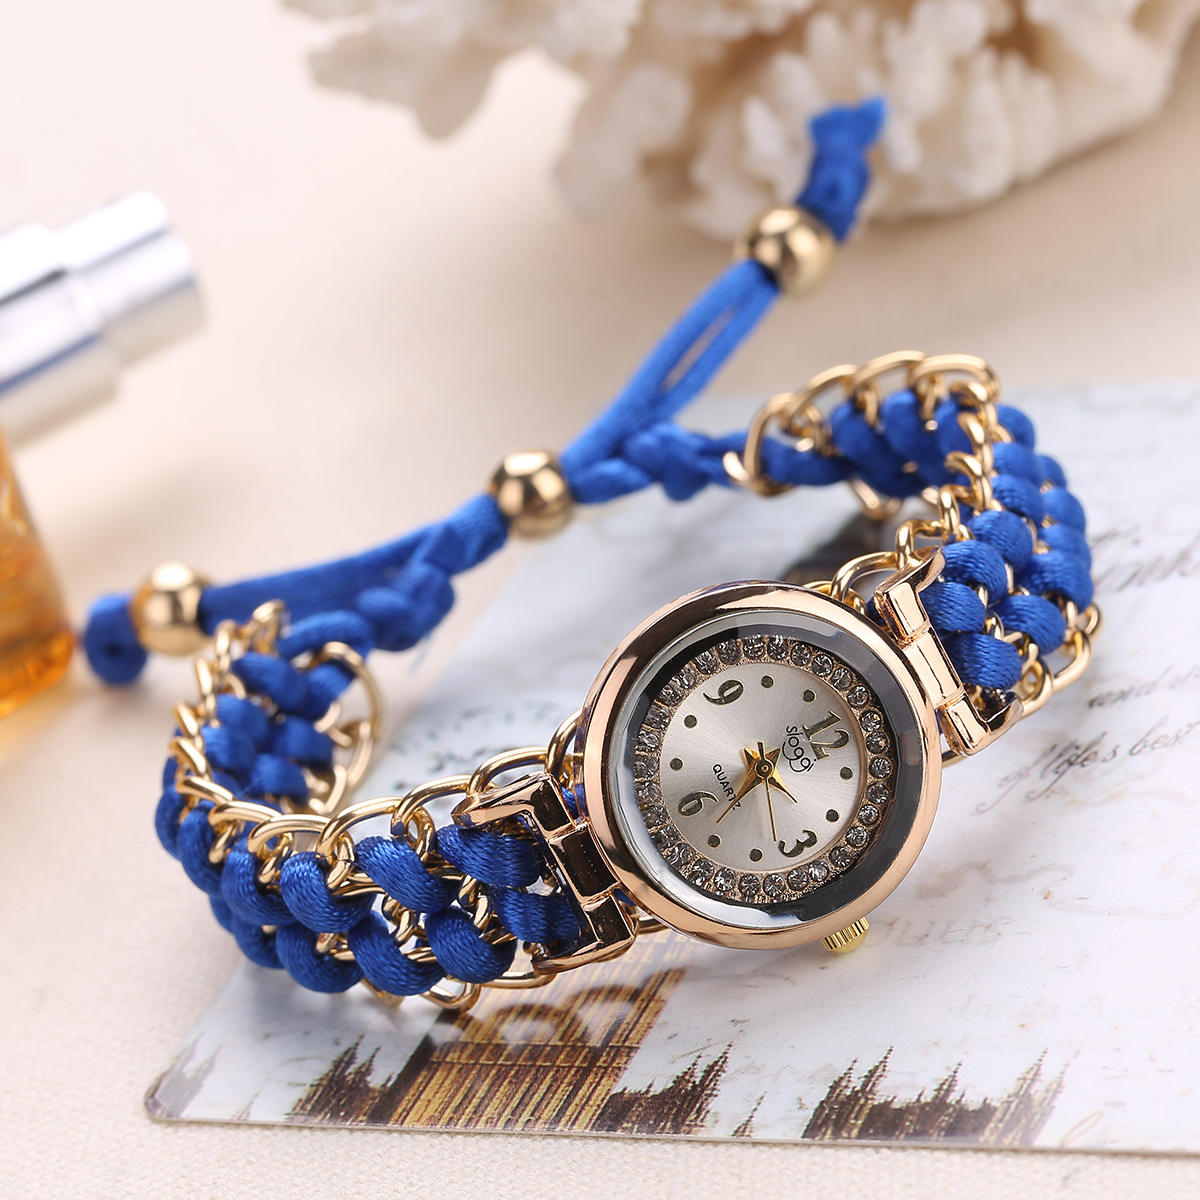 New product creative women's hand-woven stretch rope bracelet new watch stretch rope bracelet watch